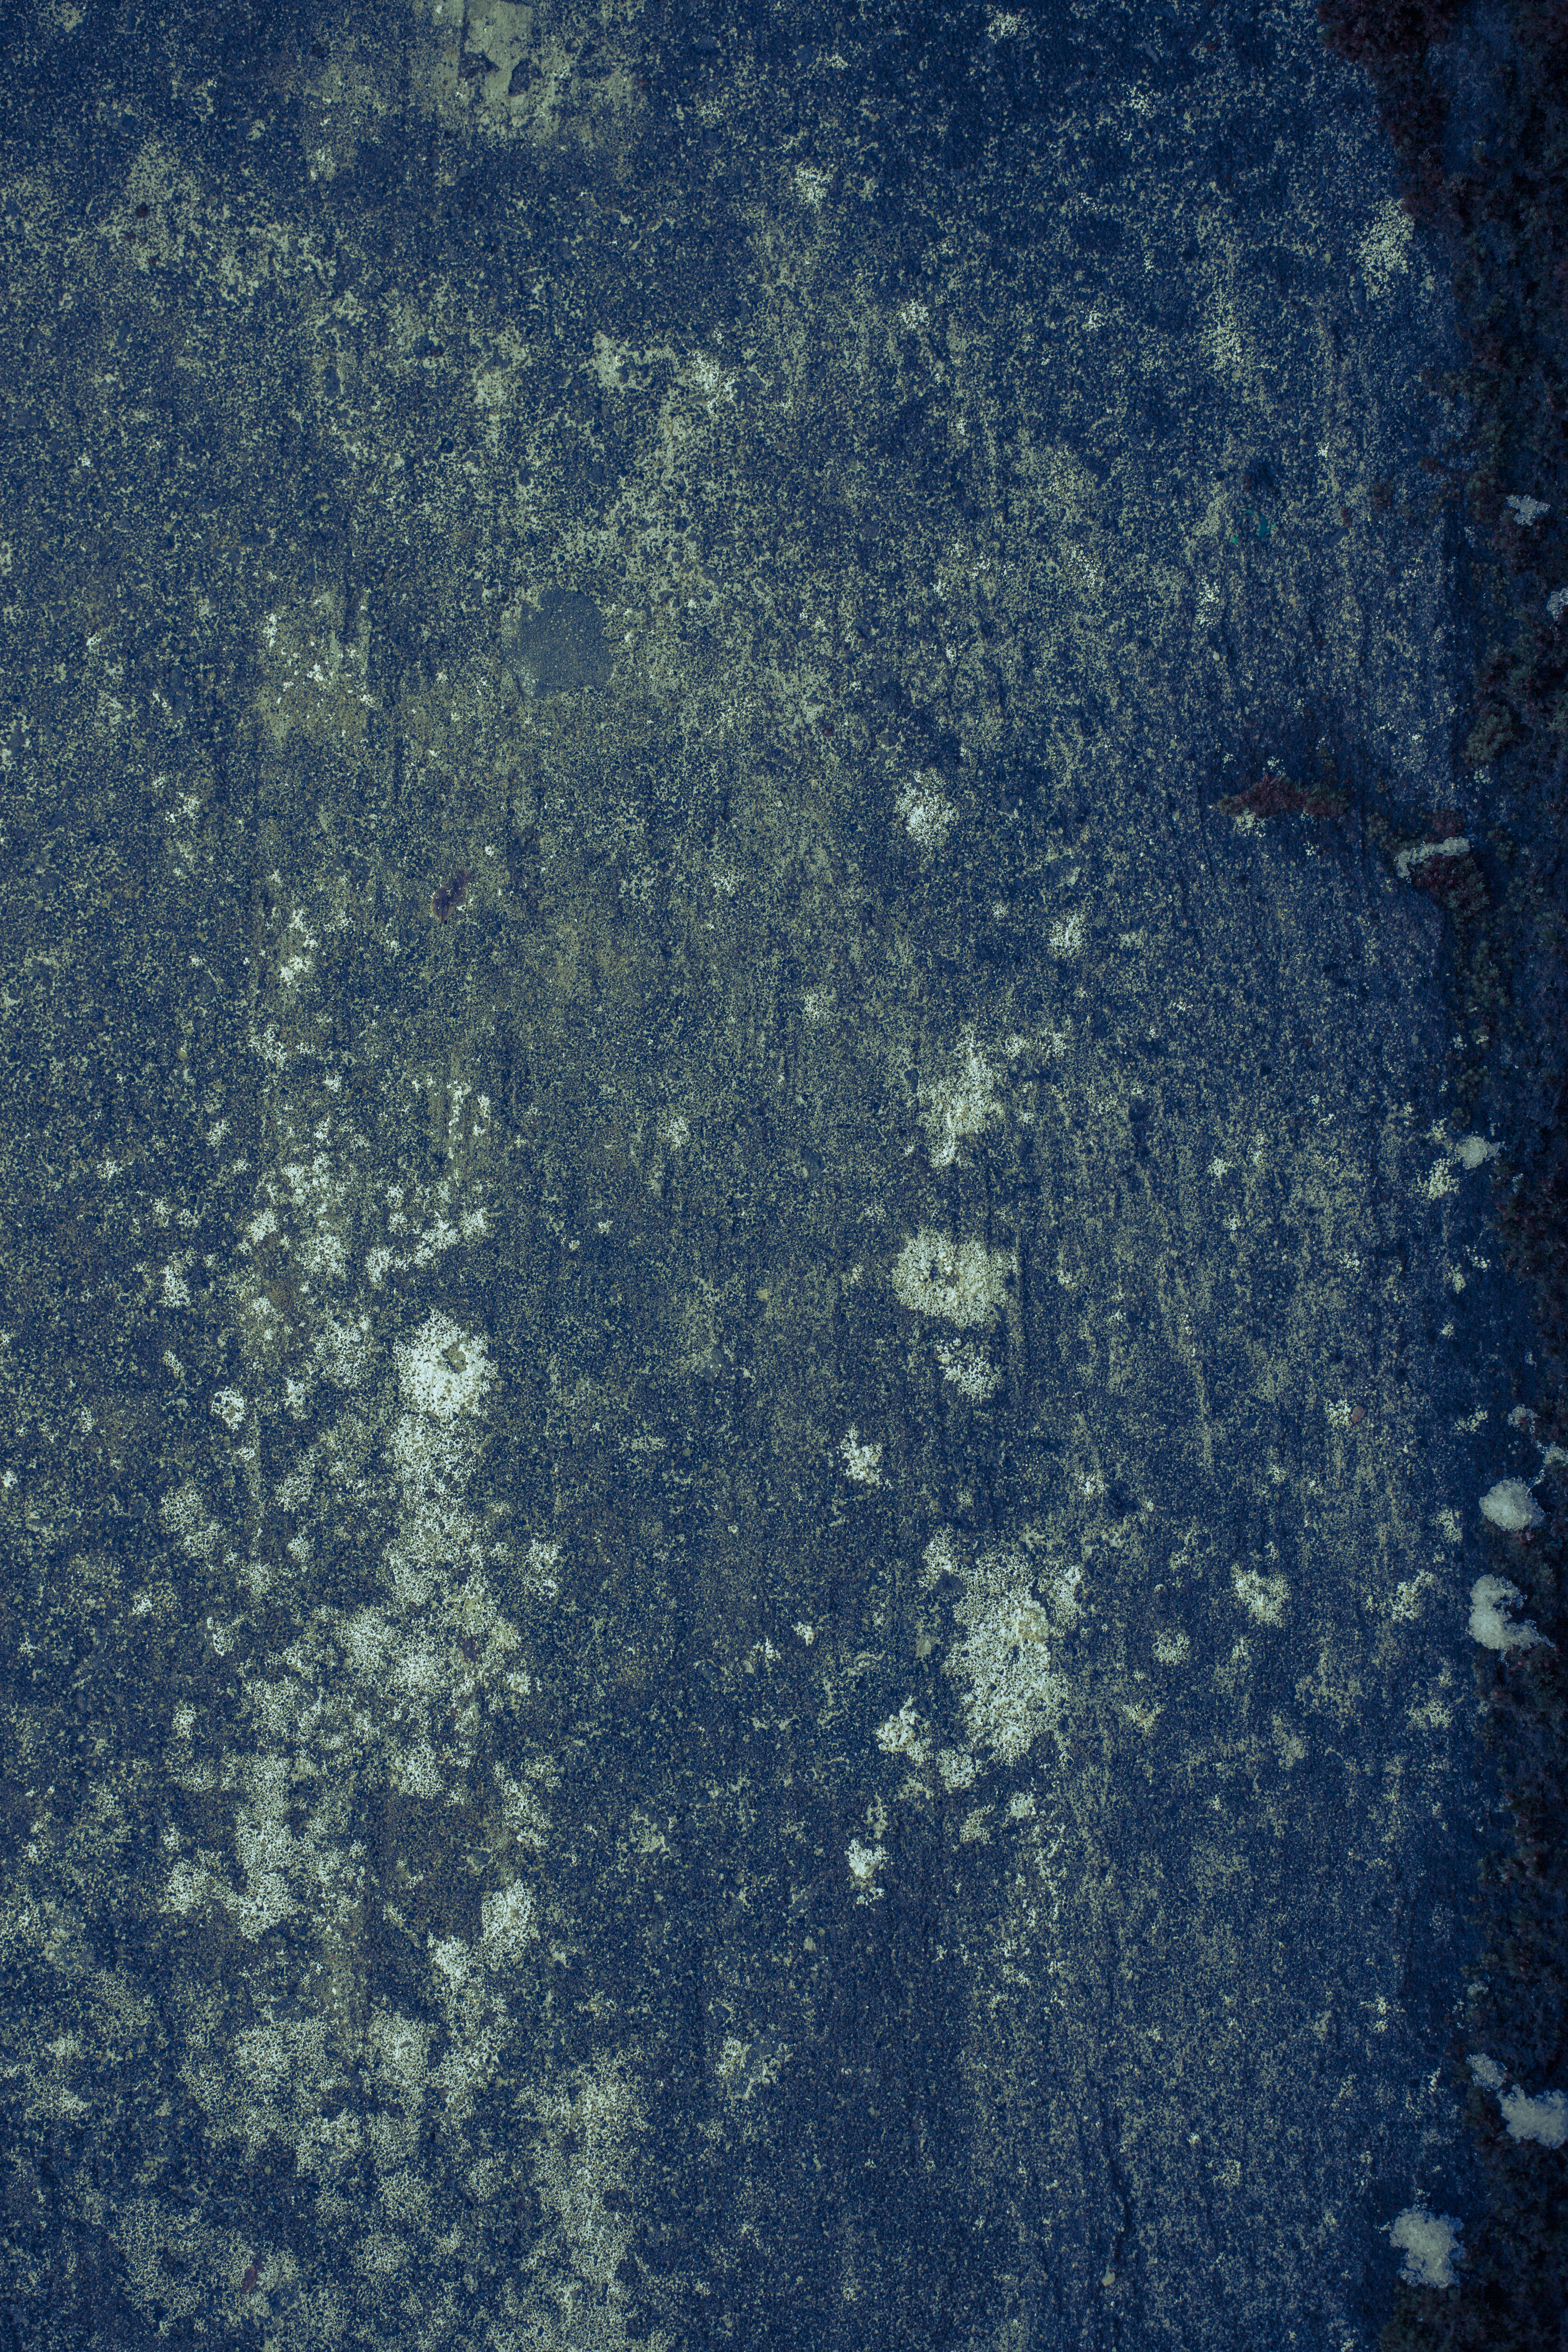 Old grunge concrete texture photo